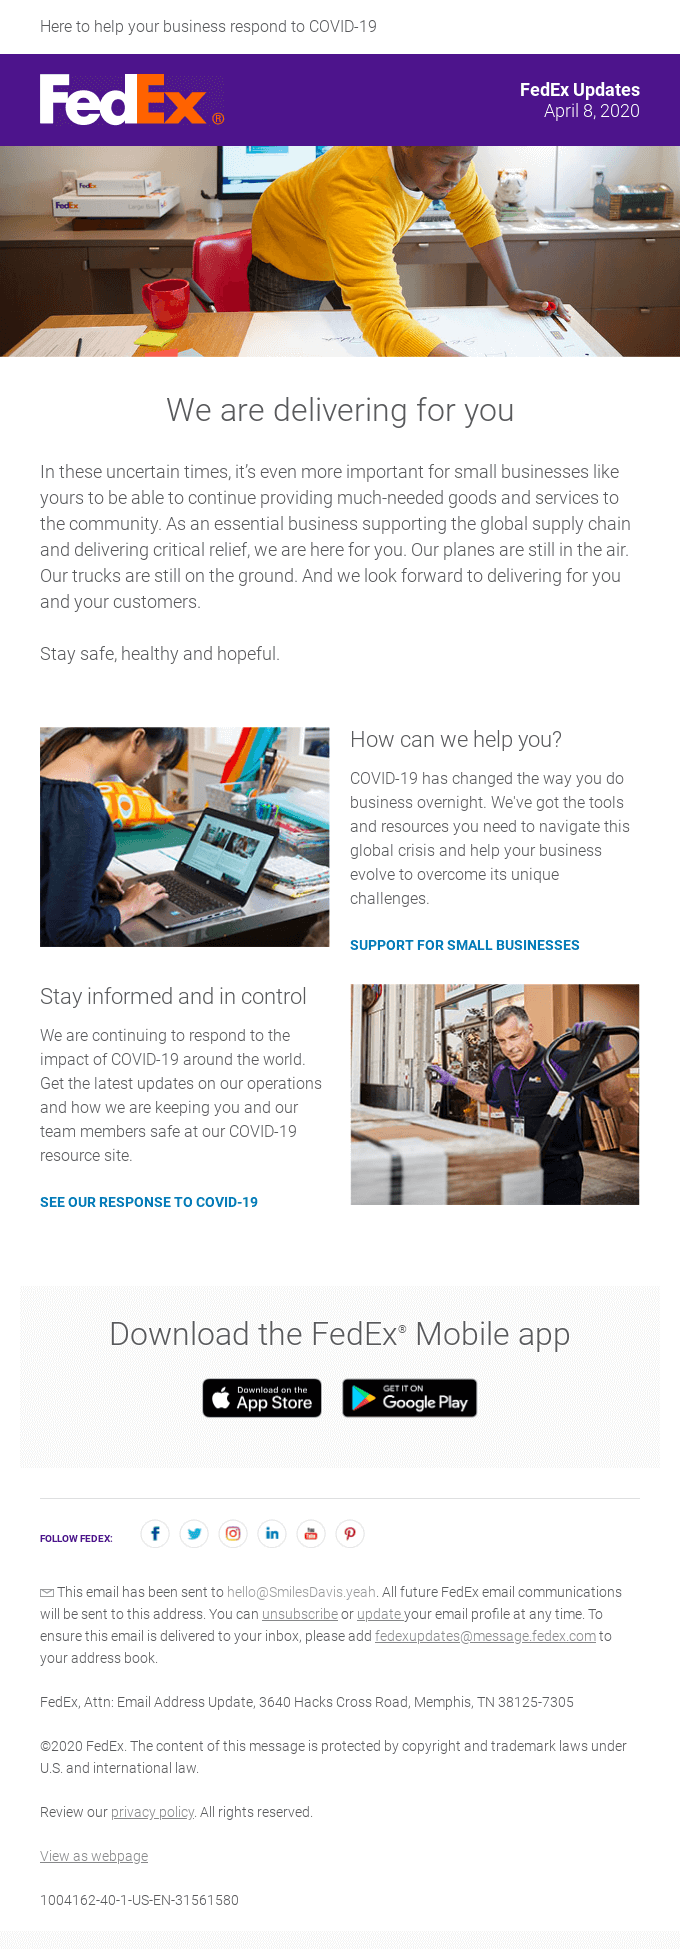 Brand story email